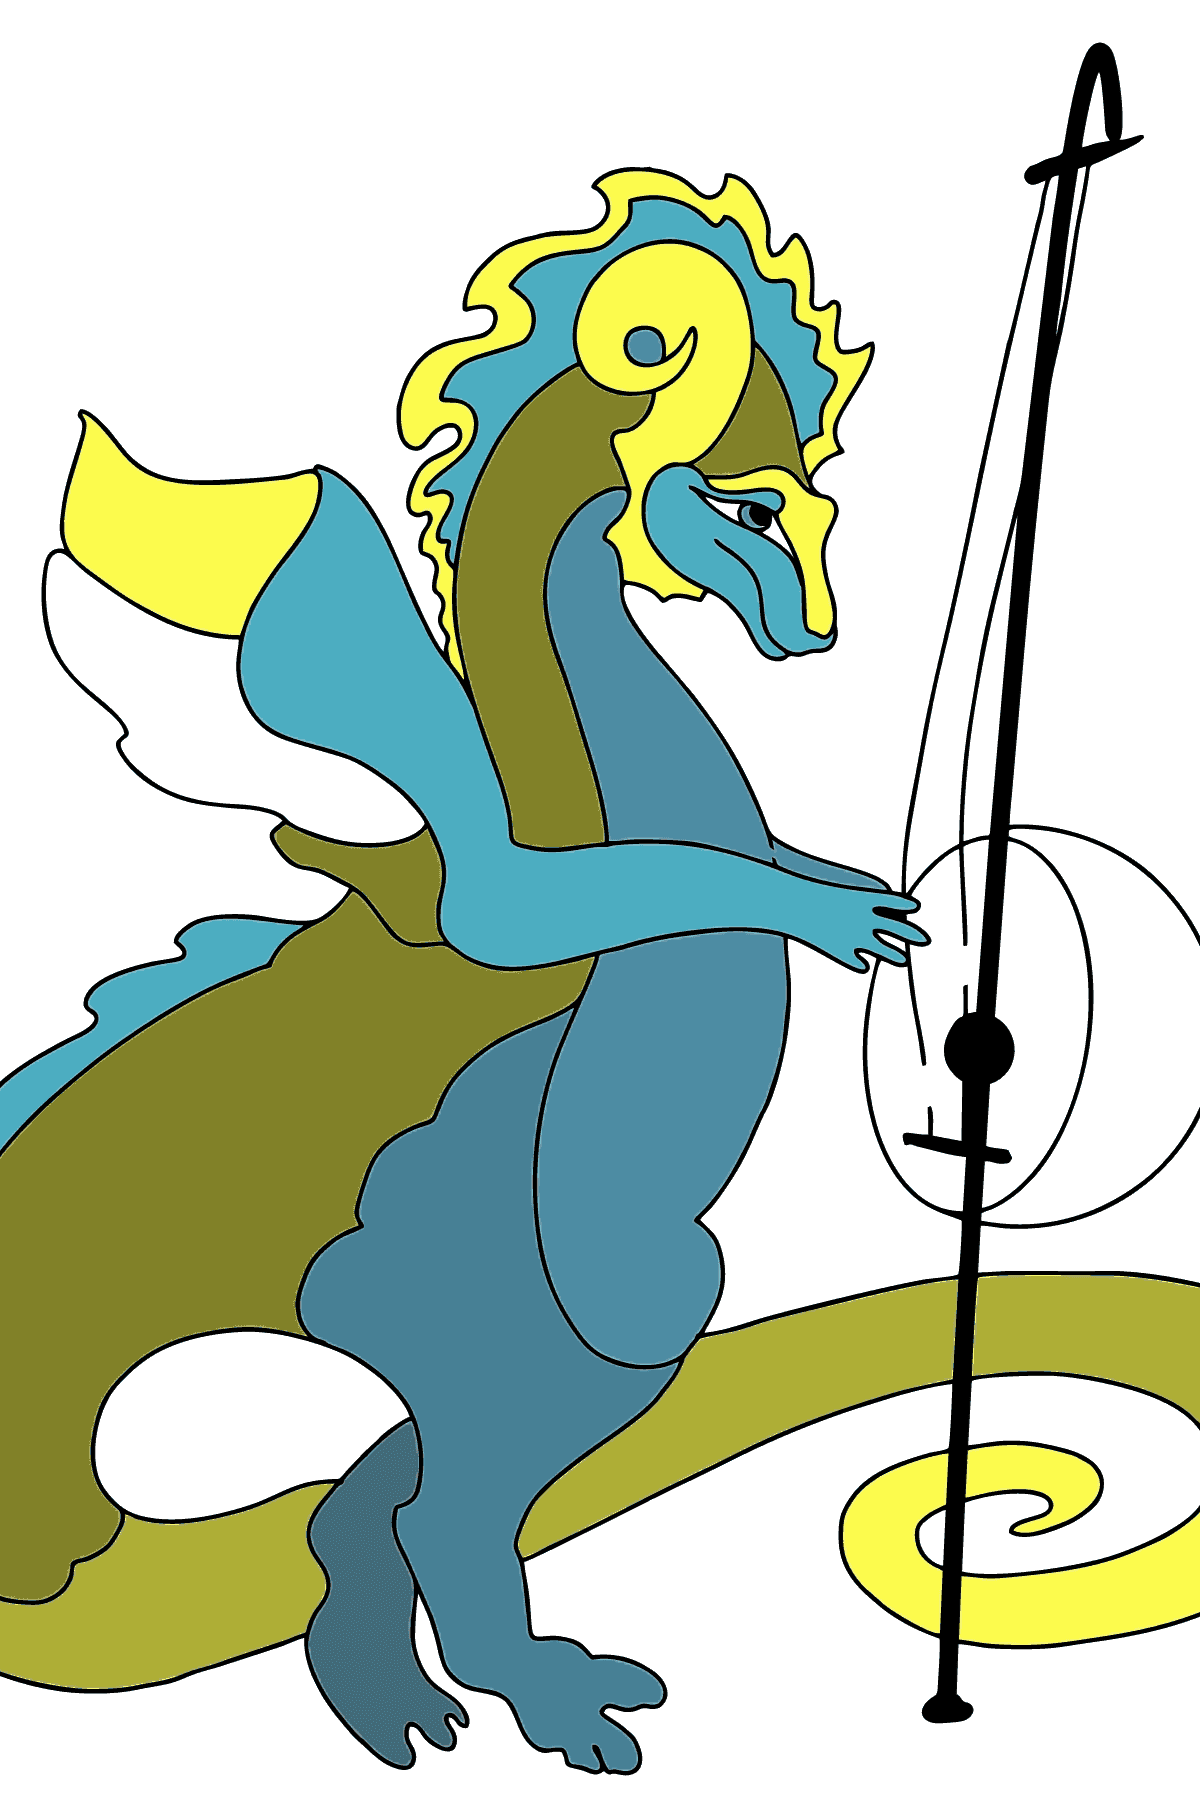 Coloring Page - A Dragon is Playing a Musical Instrument - Coloring Pages for Kids